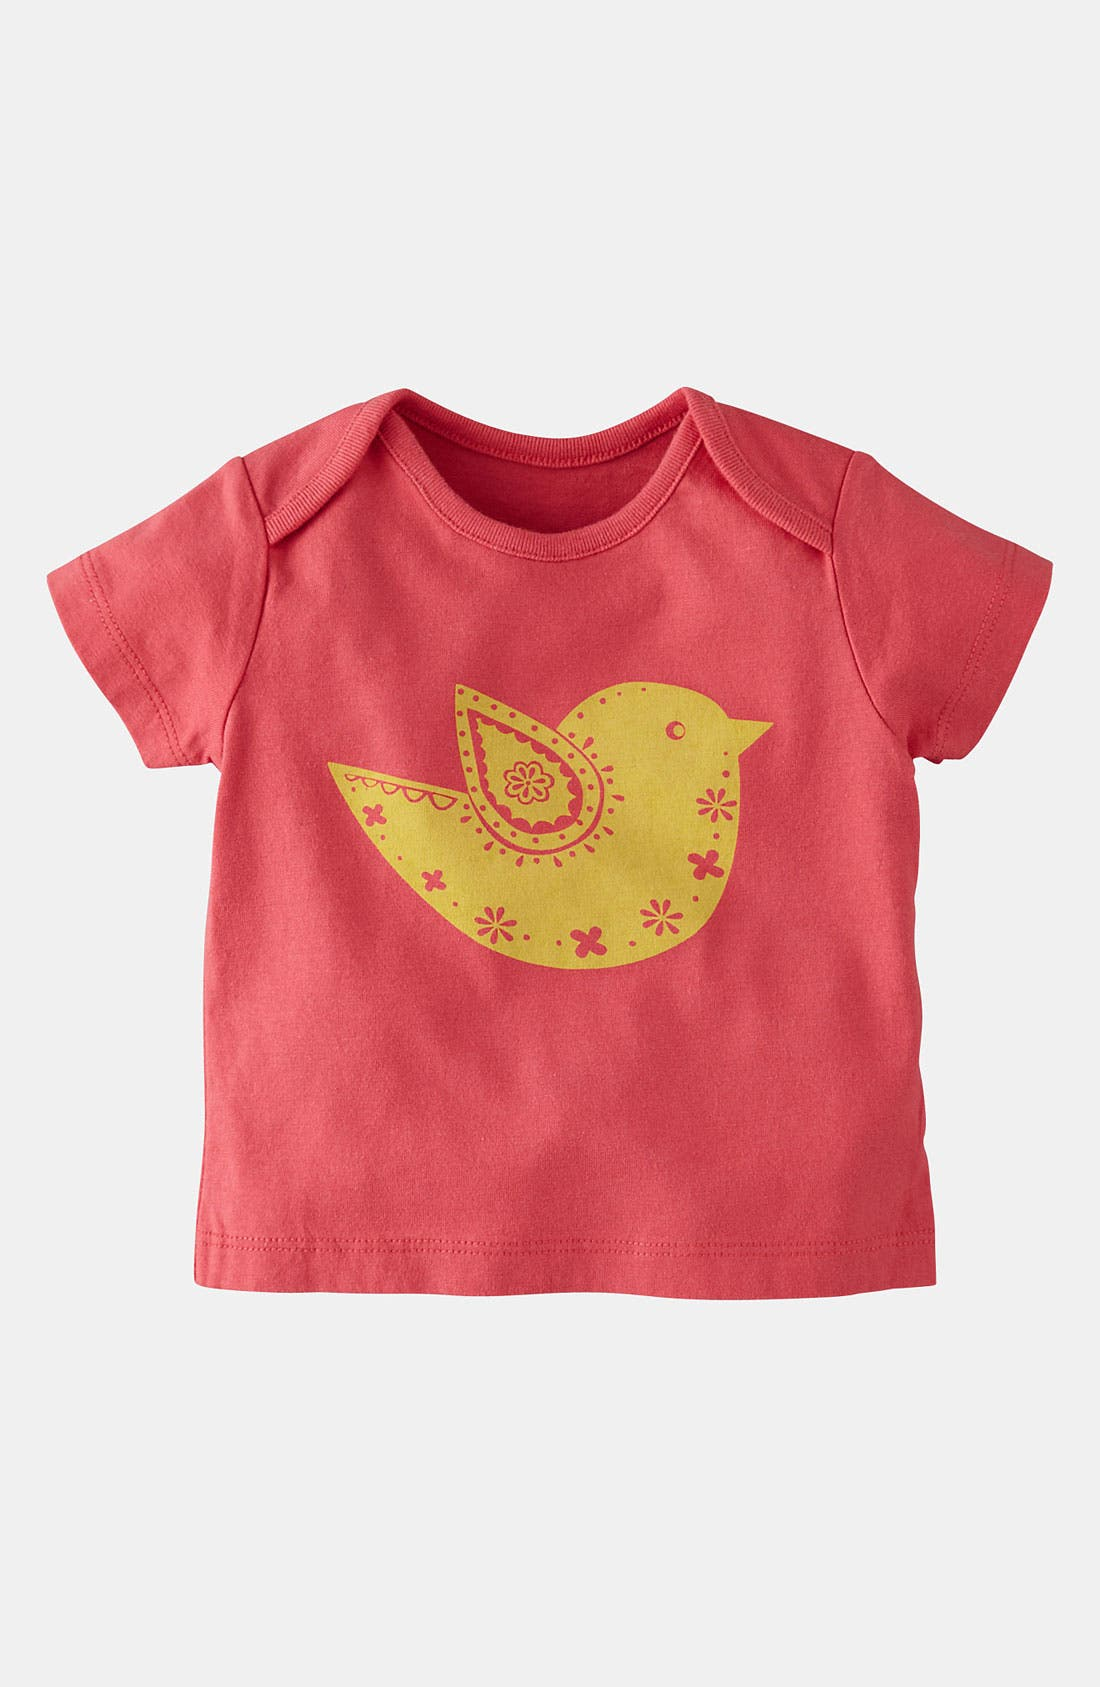 Alternate Image 1 Selected - Mini Boden 'Pretty Animal' Tee (Baby)